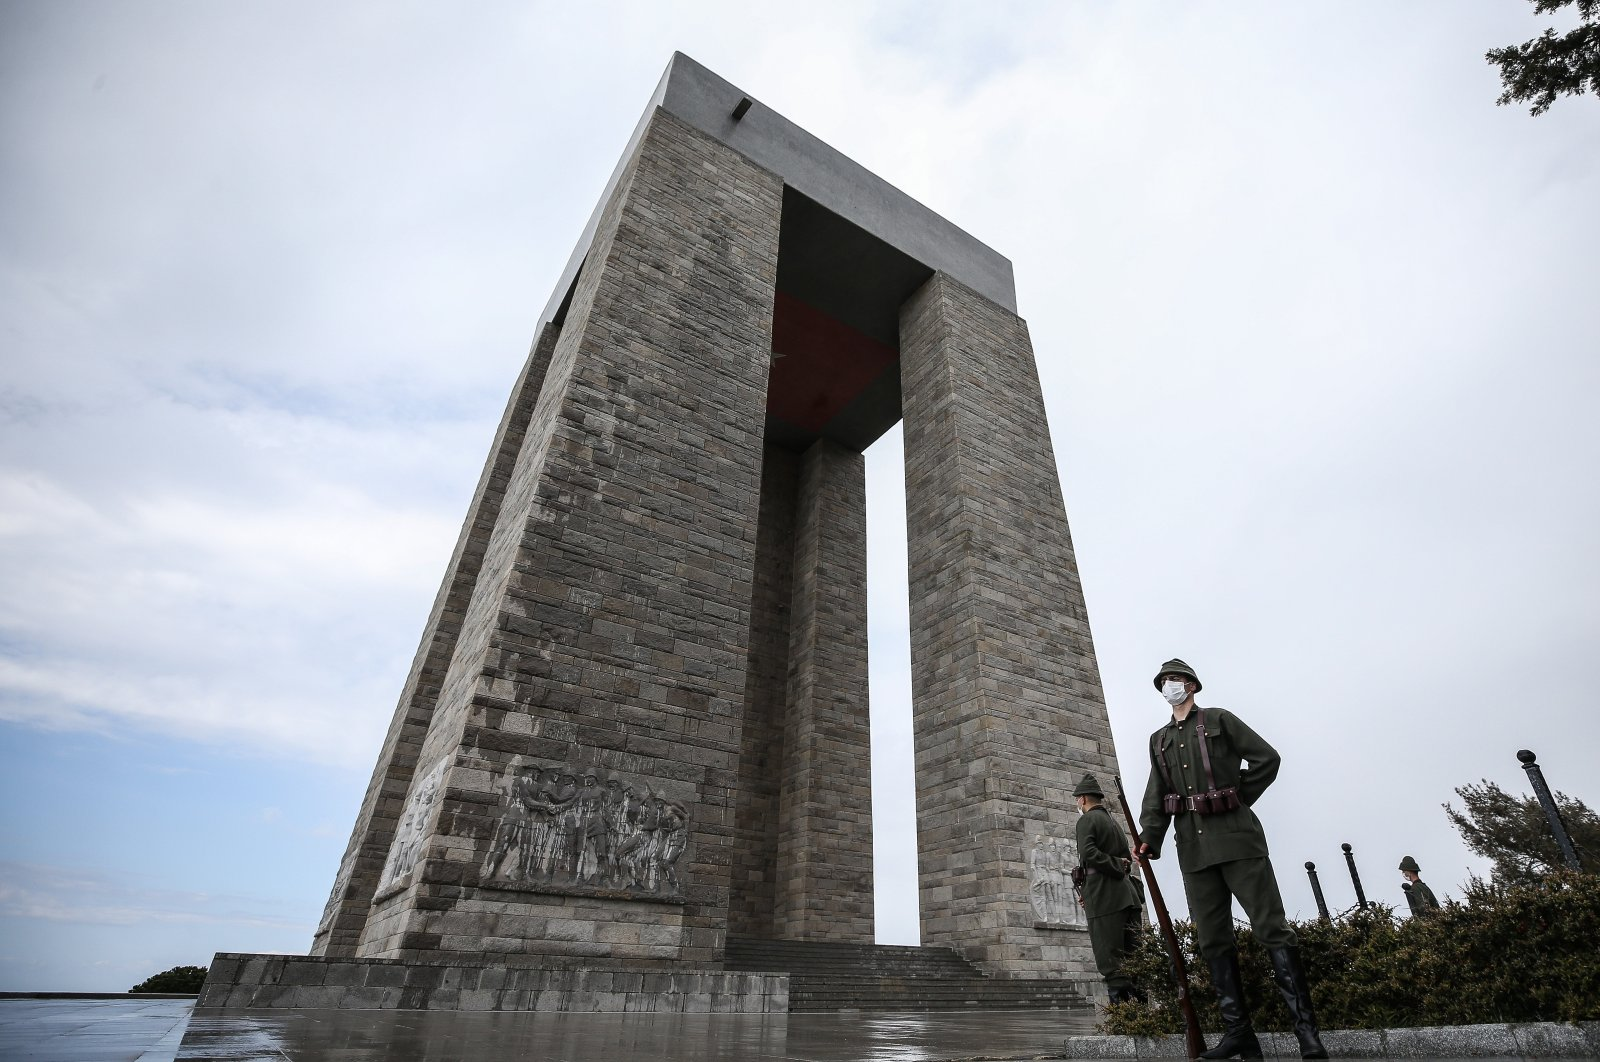 Soldiers dressed in the uniform of those who fought the 1915 battle, stand guard at a monument dedicated to fallen soldiers, in Çanakkale, western Turkey, Mar. 18, 2021. (AA PHOTO)